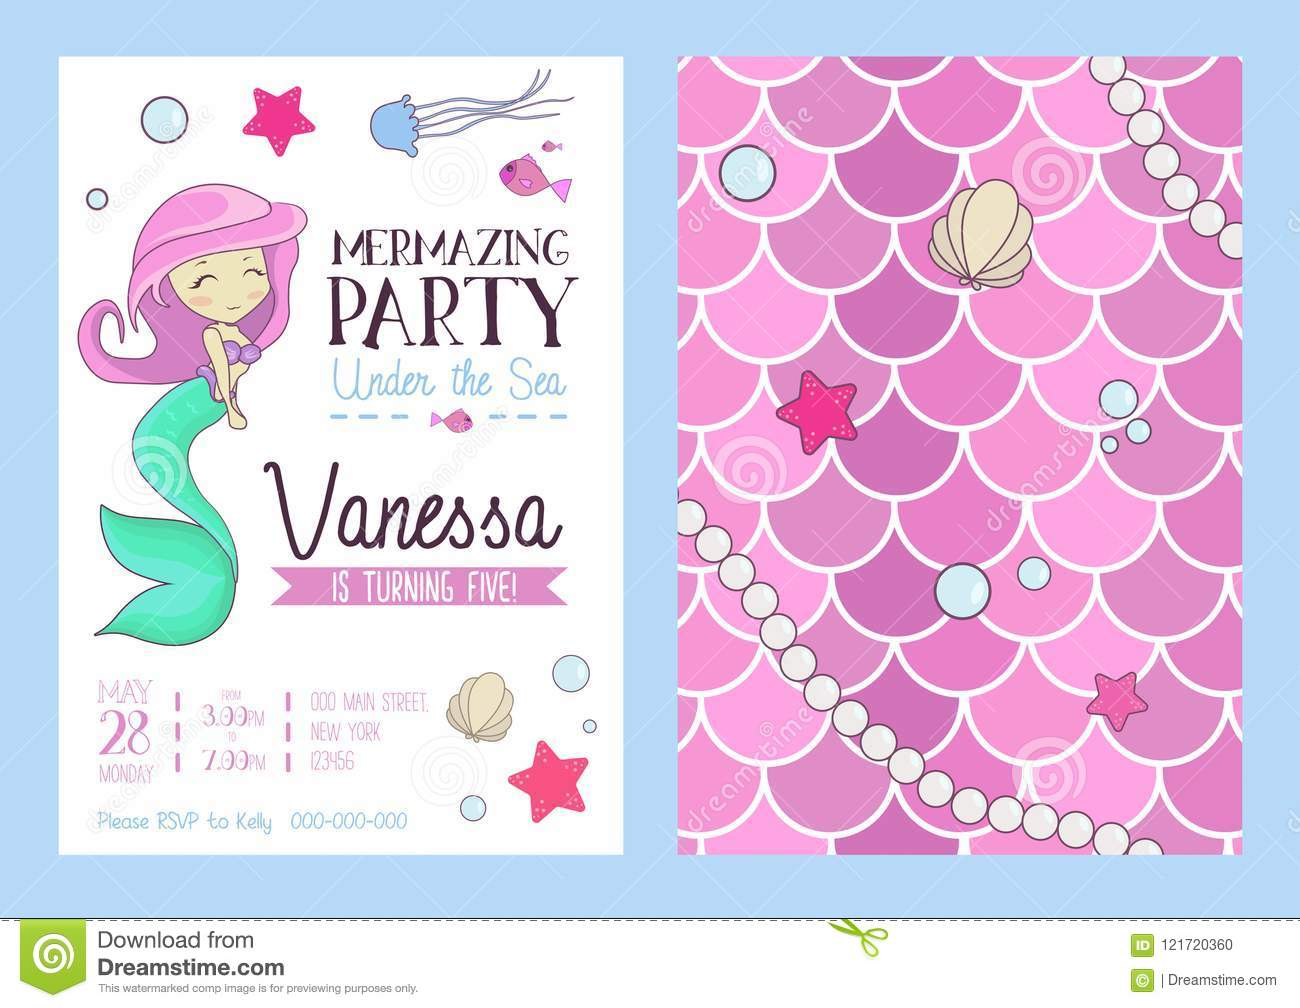 Mermaid Party Invitation With Cute Mermaid, Starfish, Seashell A